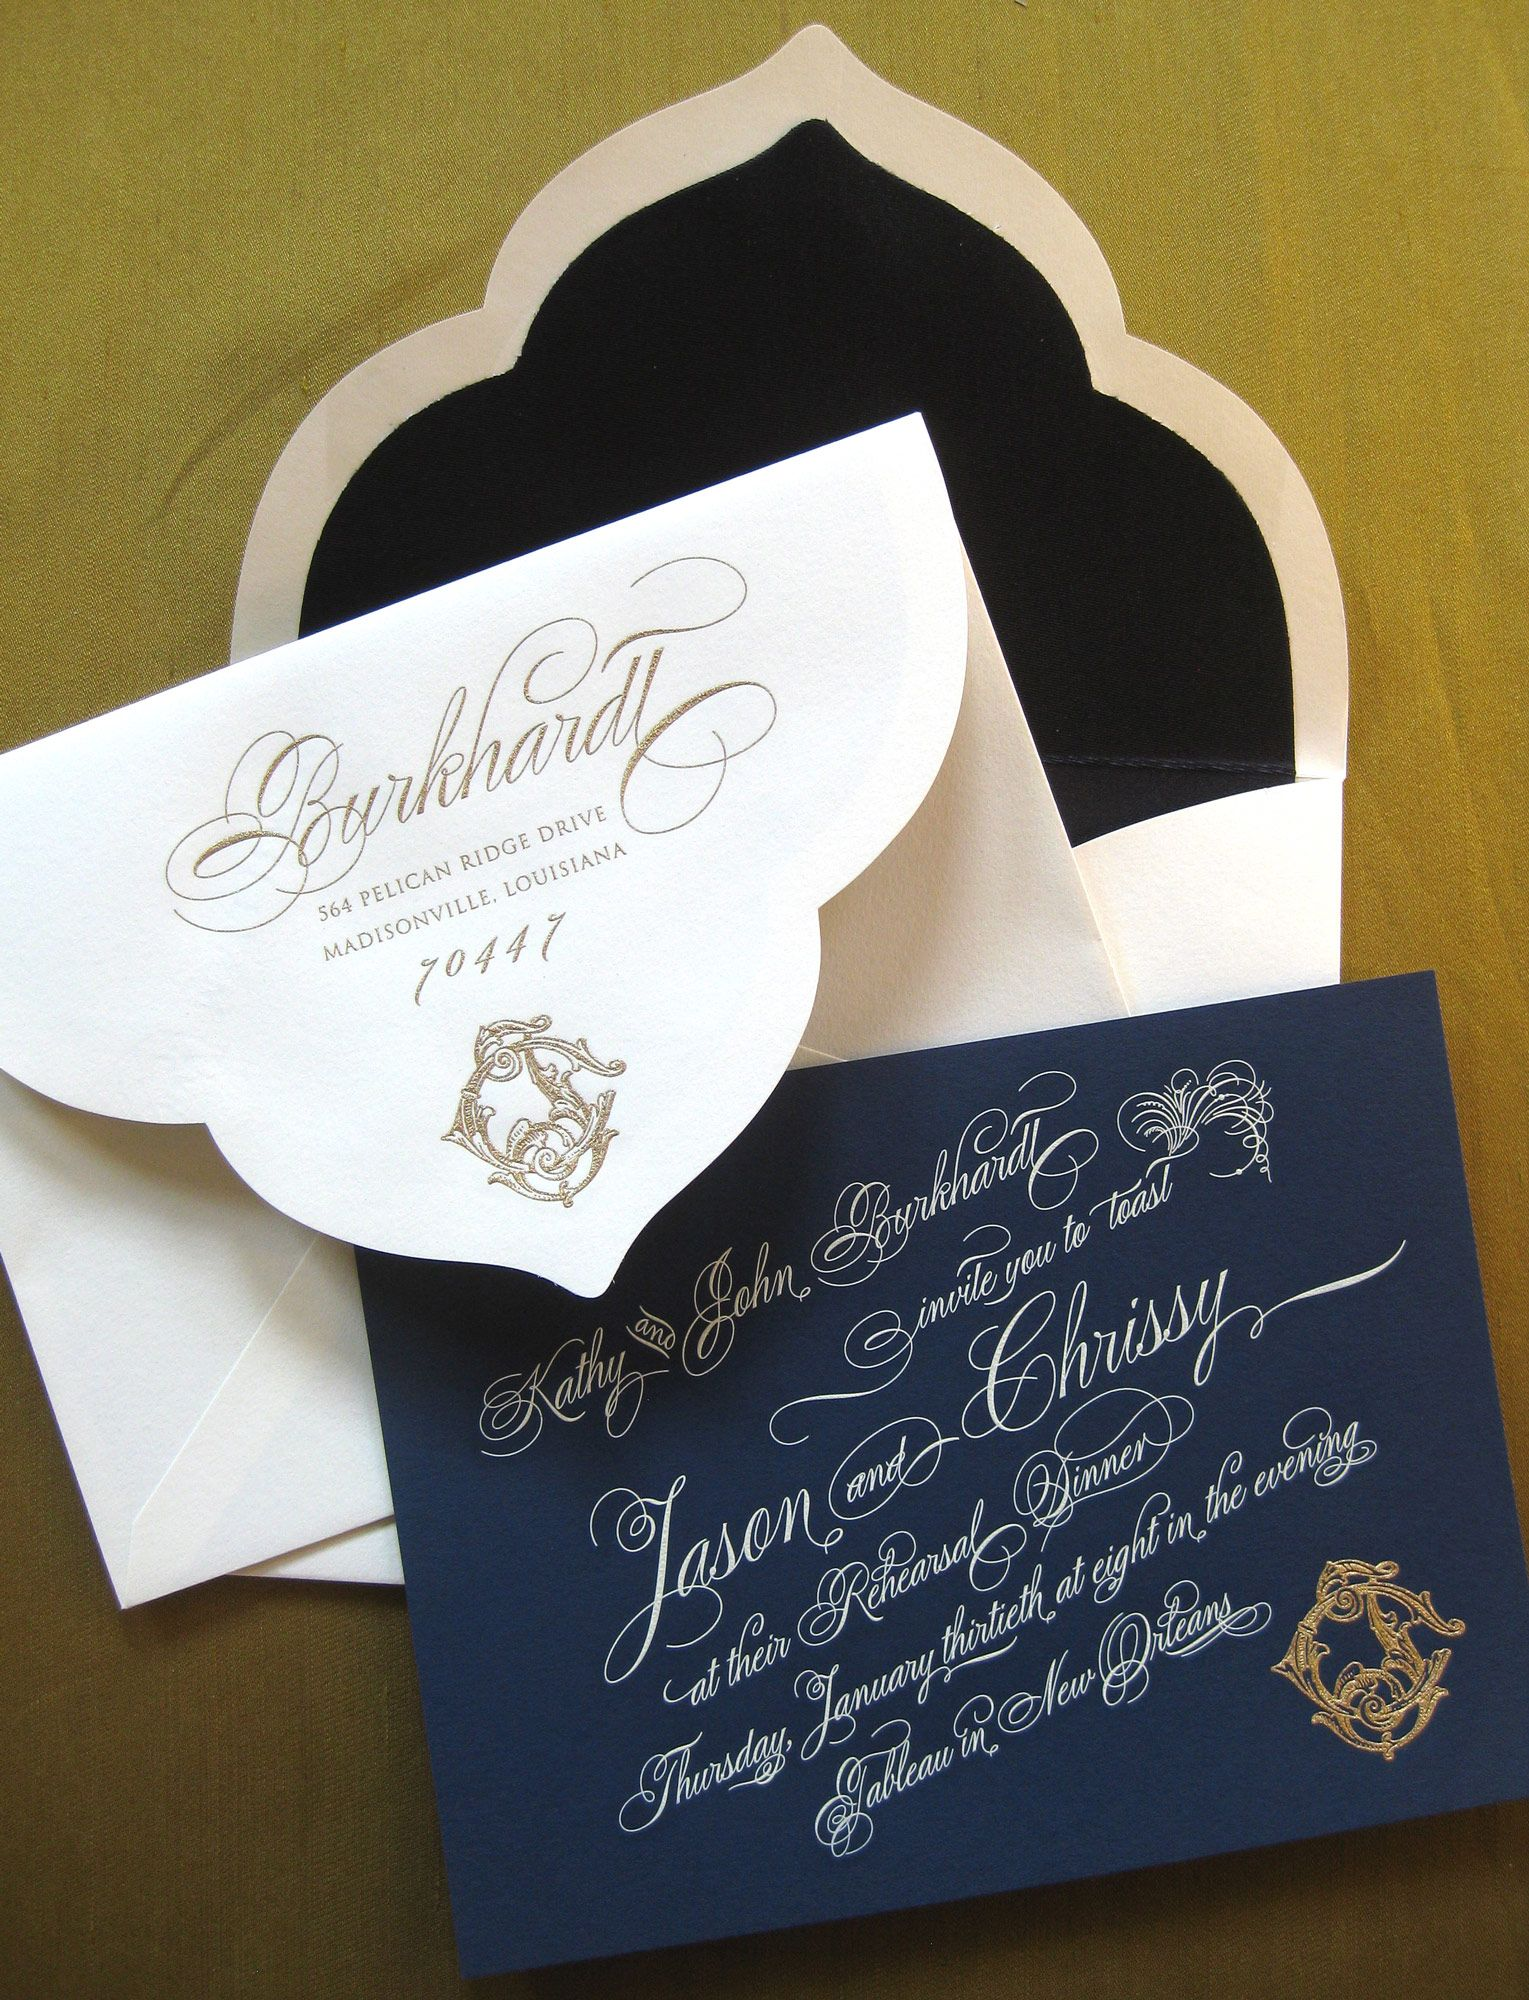 Alexa Pulitzer - Custom Collections (With images) | Wedding stationery,  Bridal luncheon invitations, Invitations